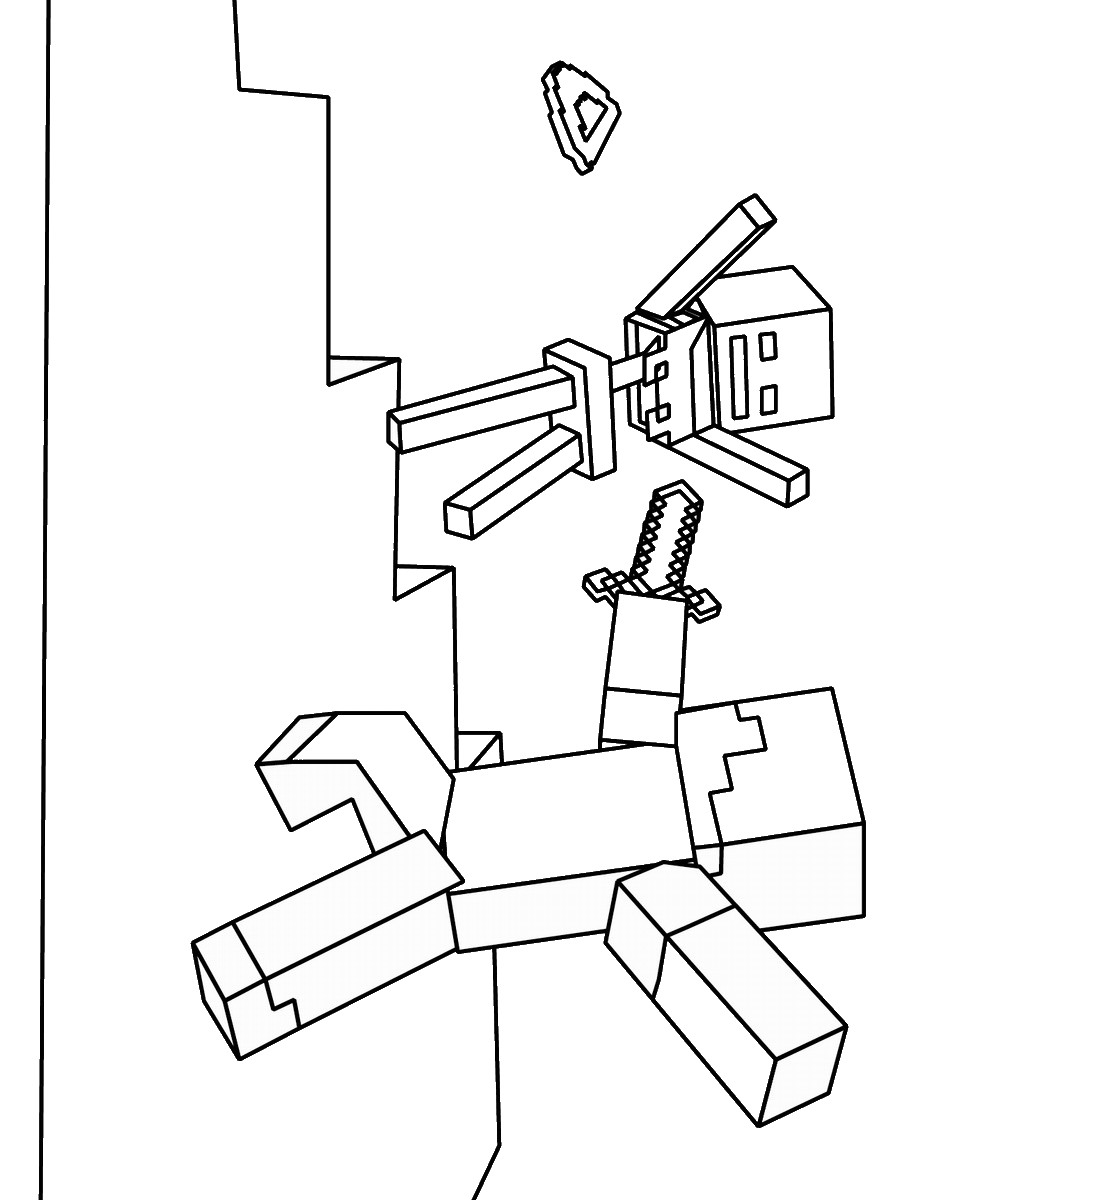 colouring pages of minecraft minecraft coloring pages best coloring pages for kids minecraft colouring pages of